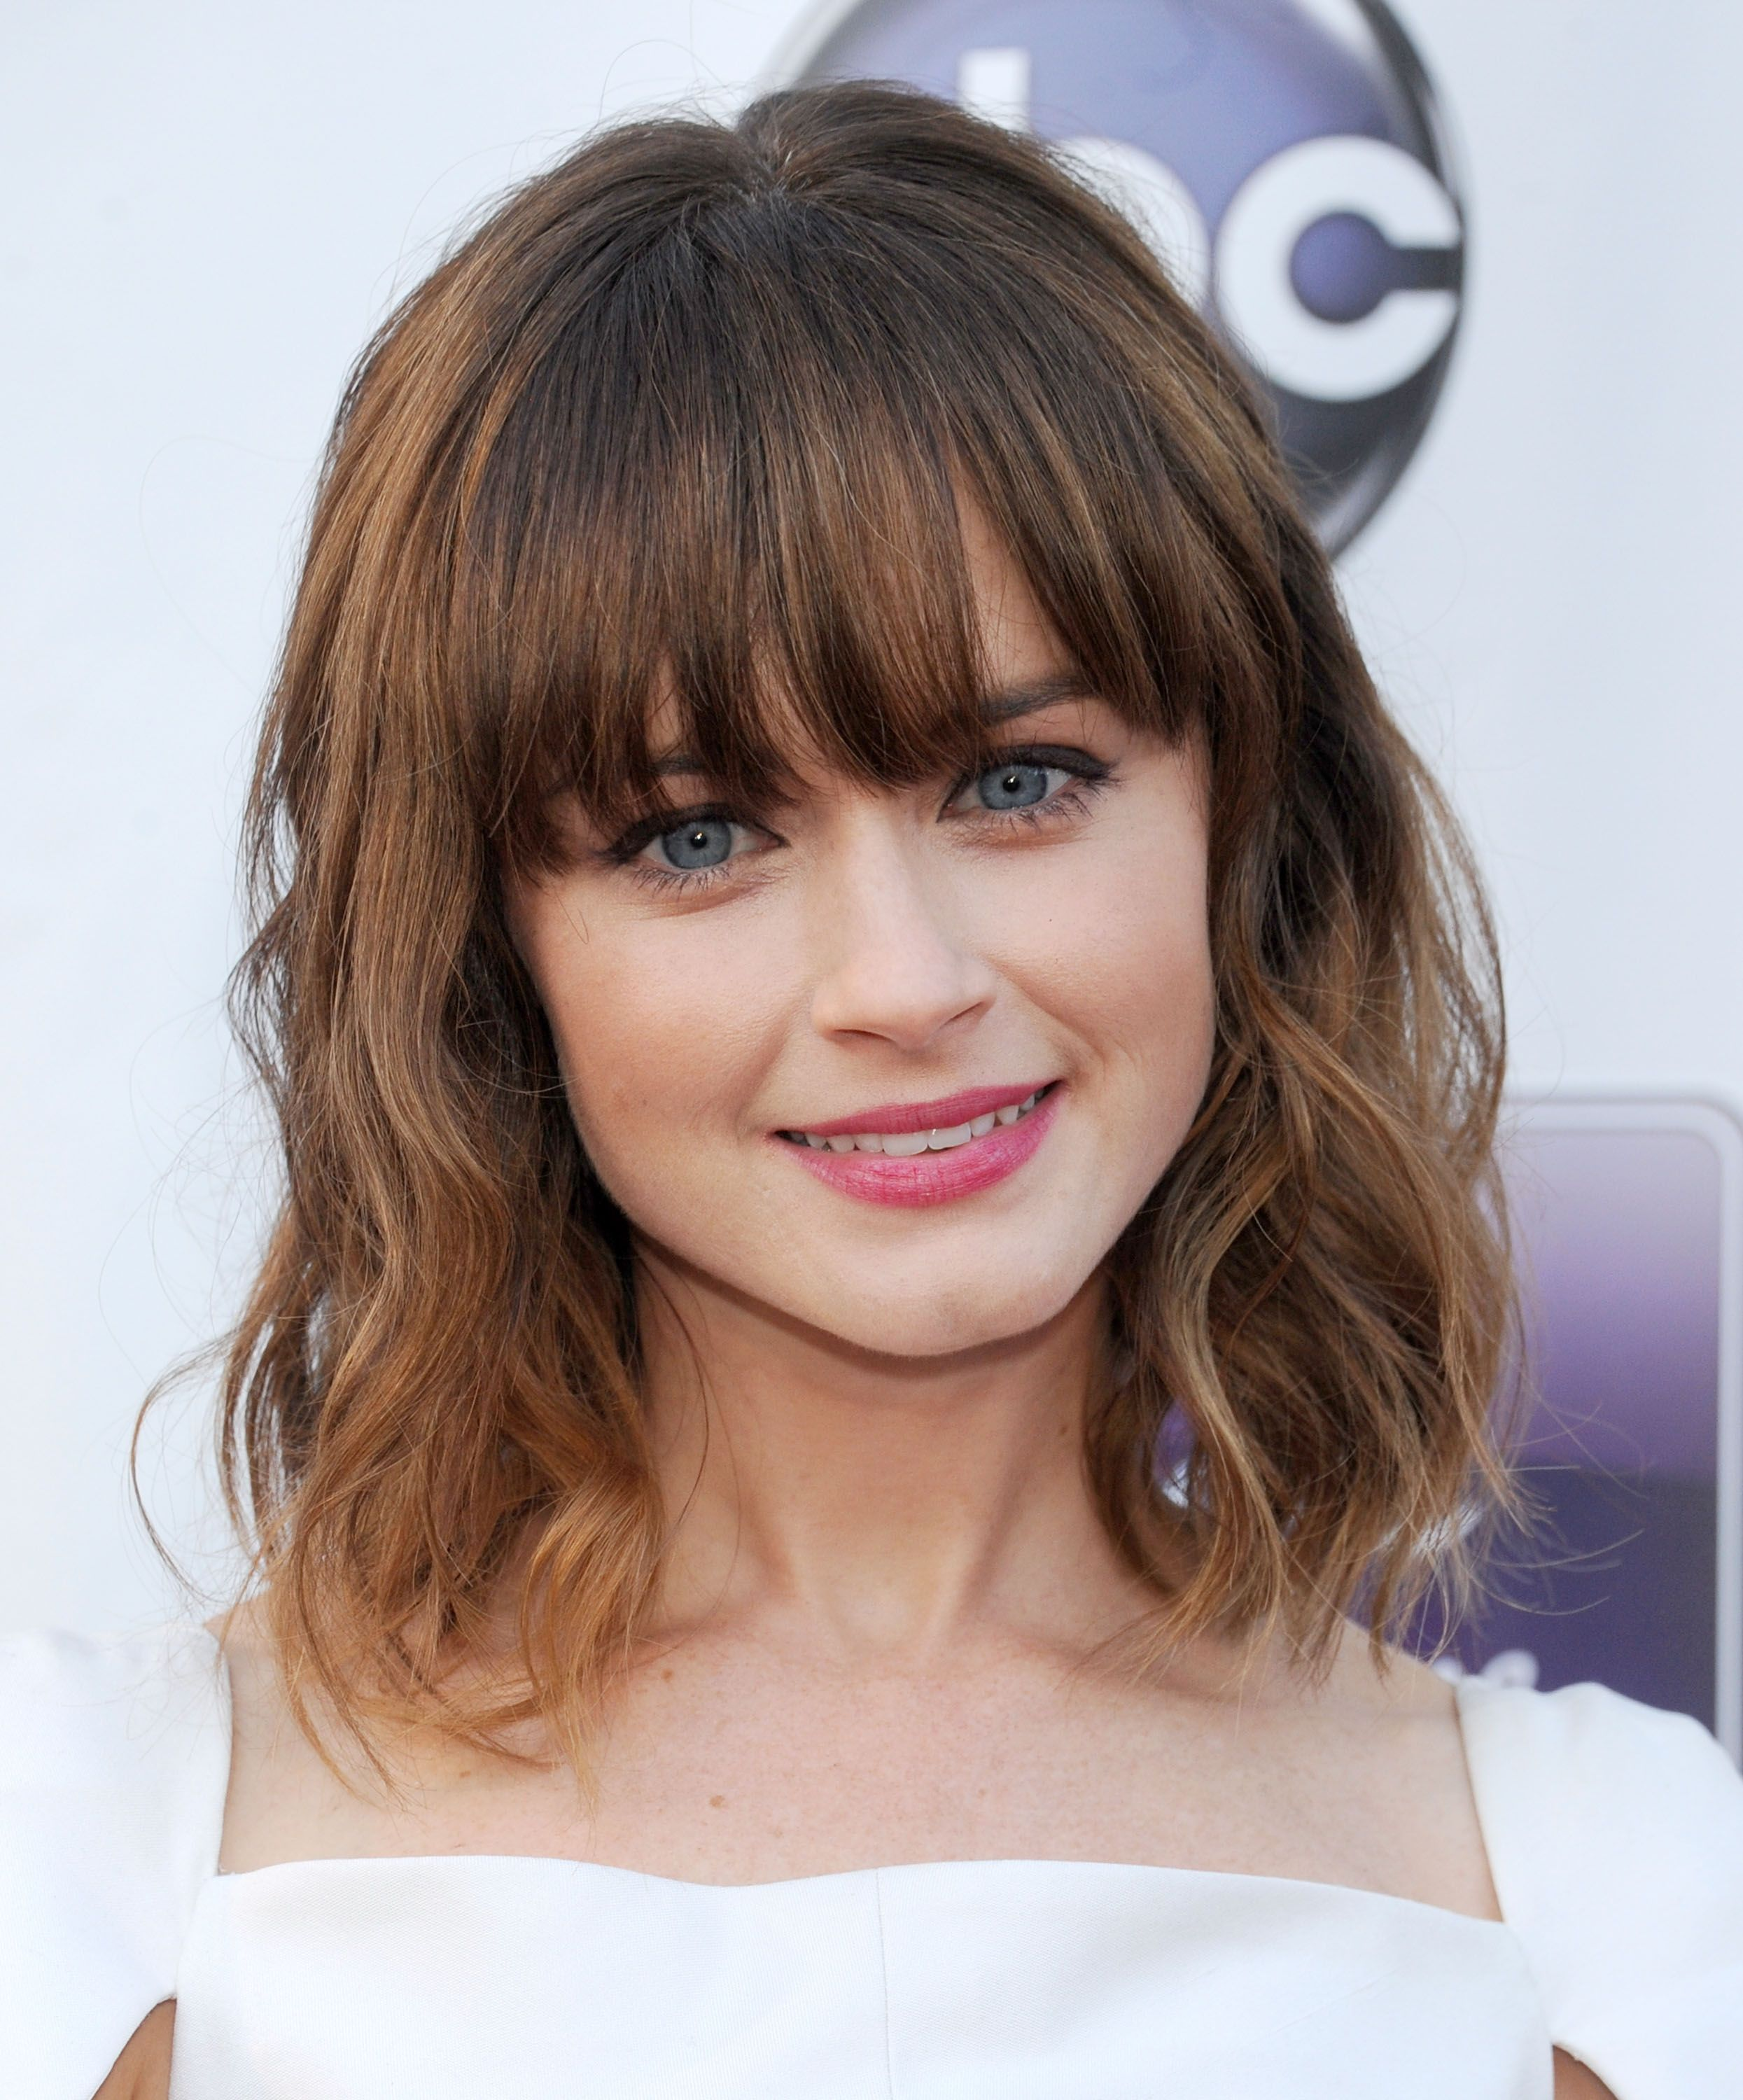 35 Best Hairstyles With Bangs   Photos of Celebrity Haircuts With Bangs haircut with bangs